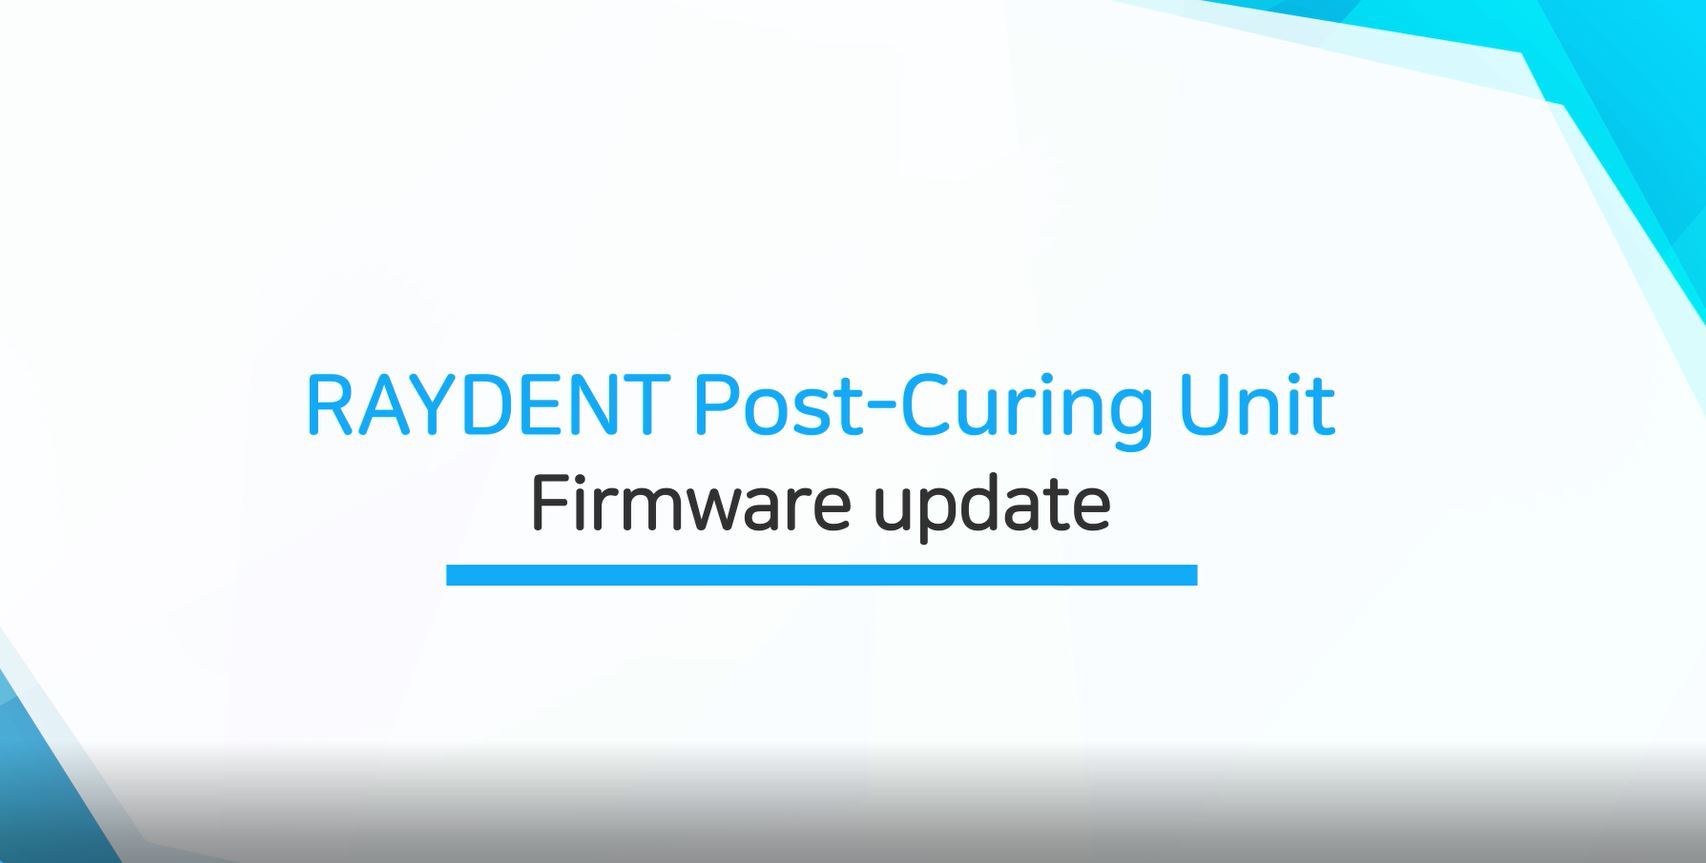 Firmware update for RAYDENT Post-curing Unit